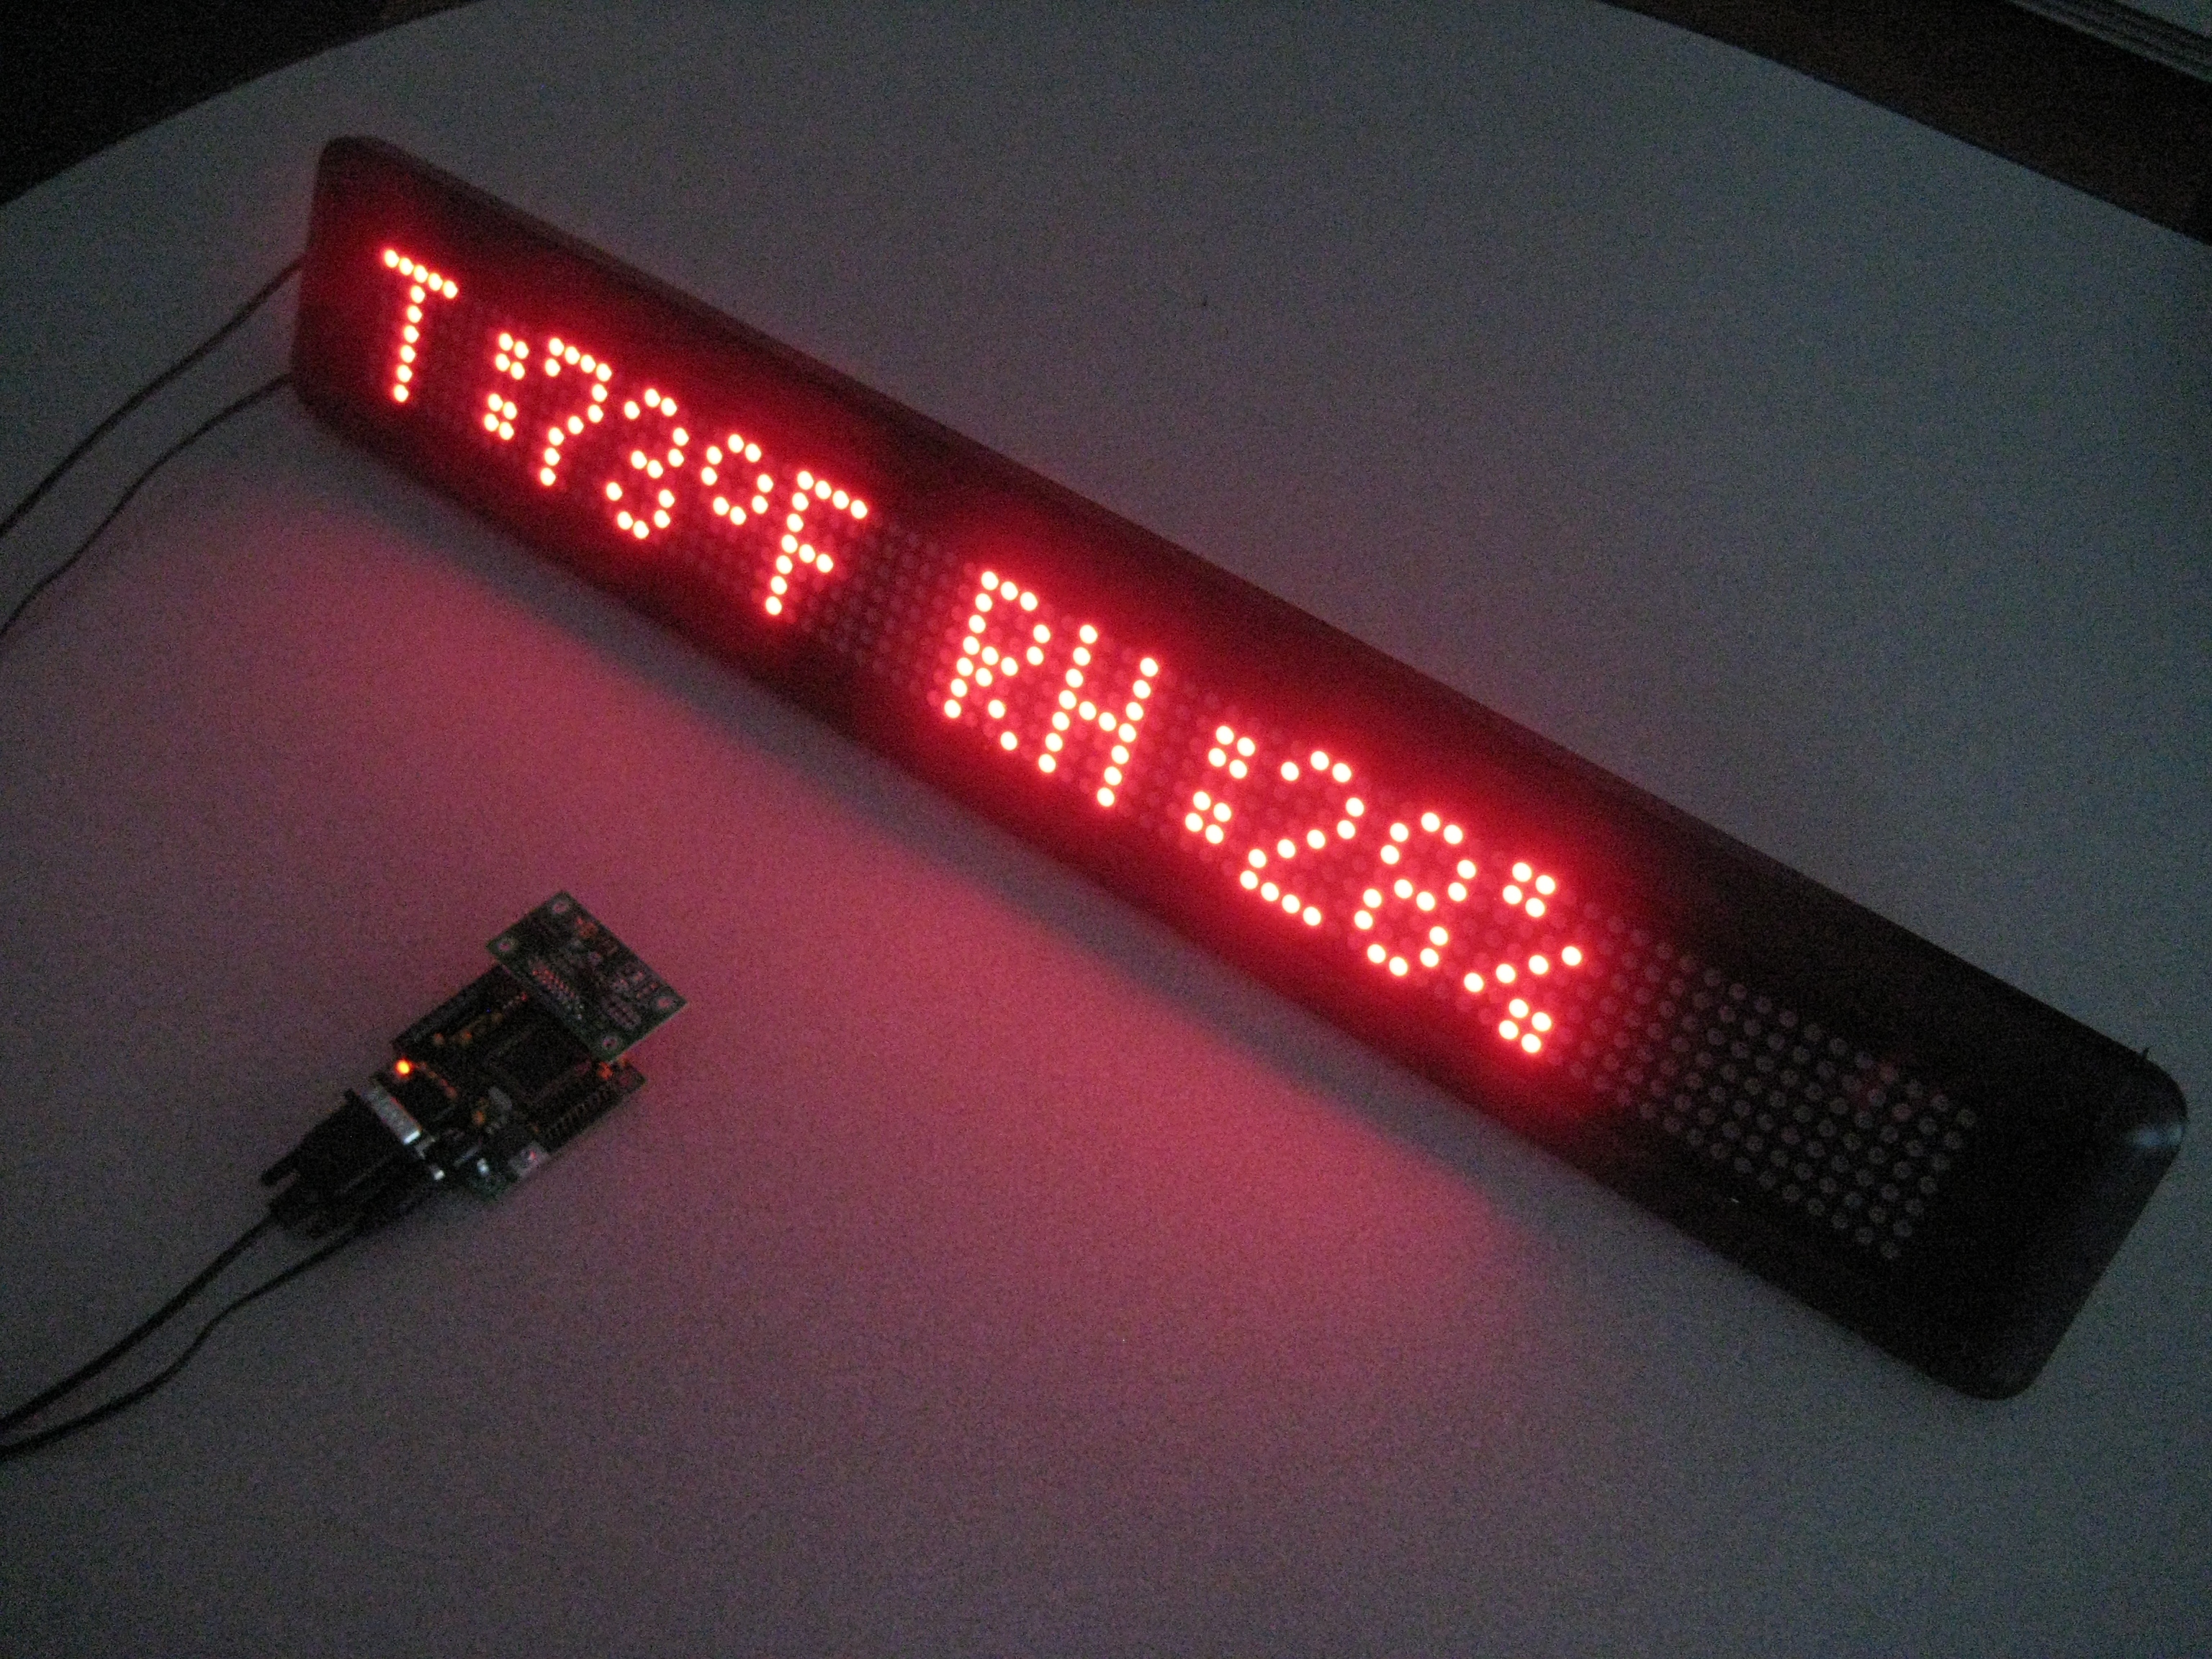 Temperature/Humidity on MML16RU LED Display